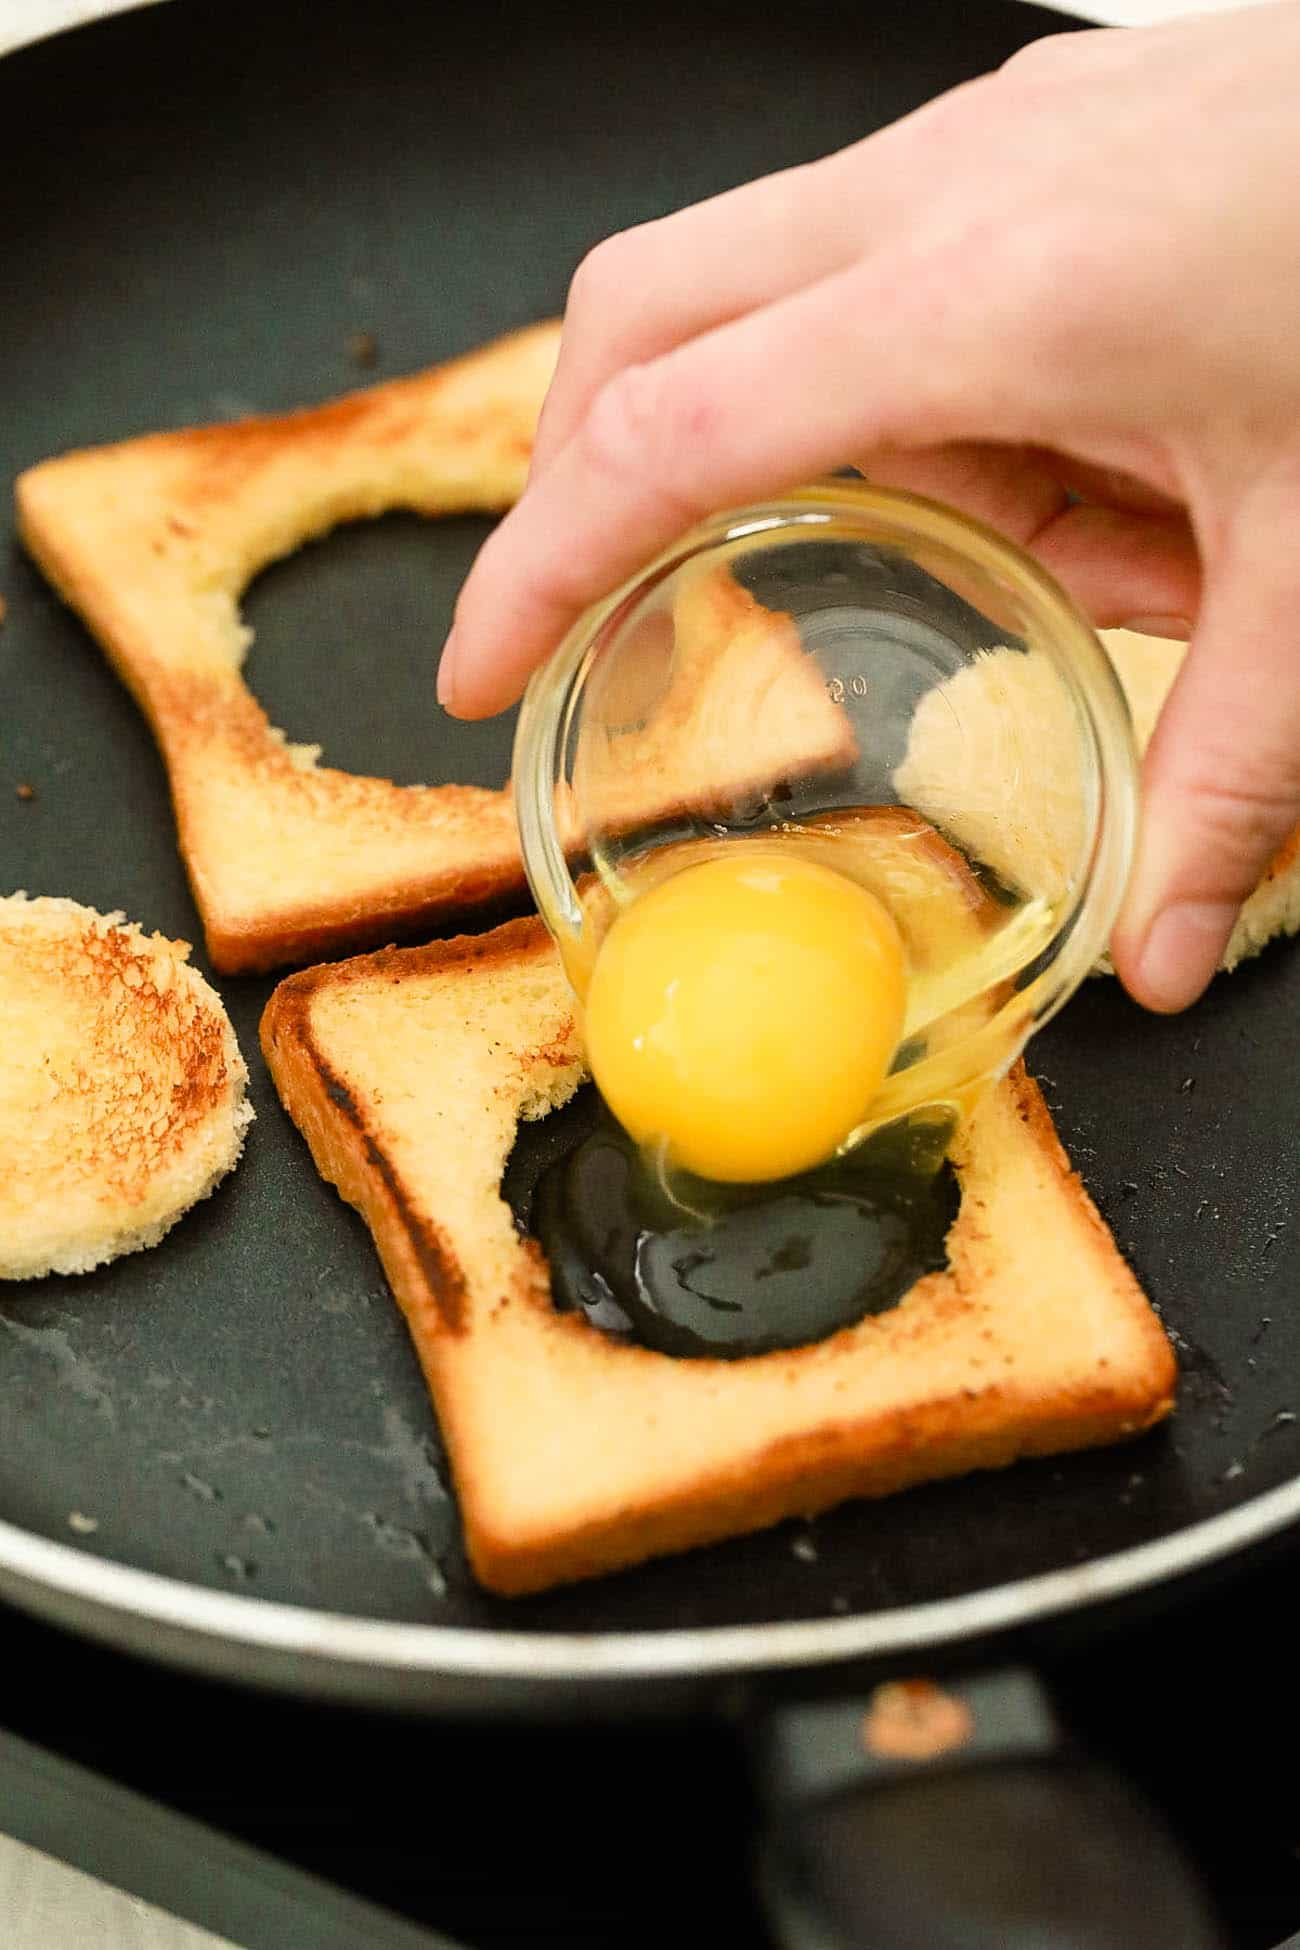 eggs added to toast in a skillet